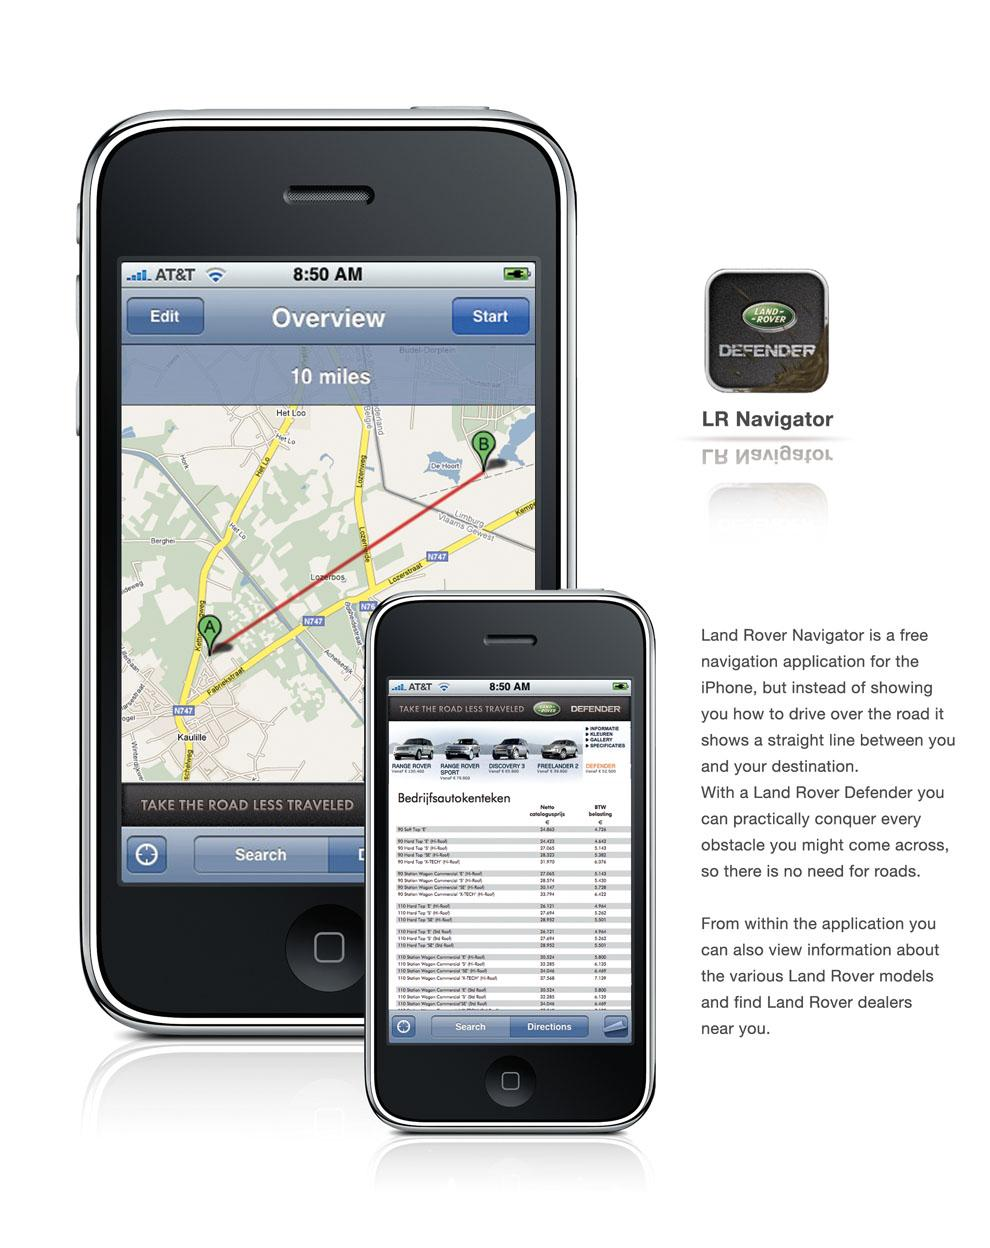 Land Rover Digital Ad -  iPhone application